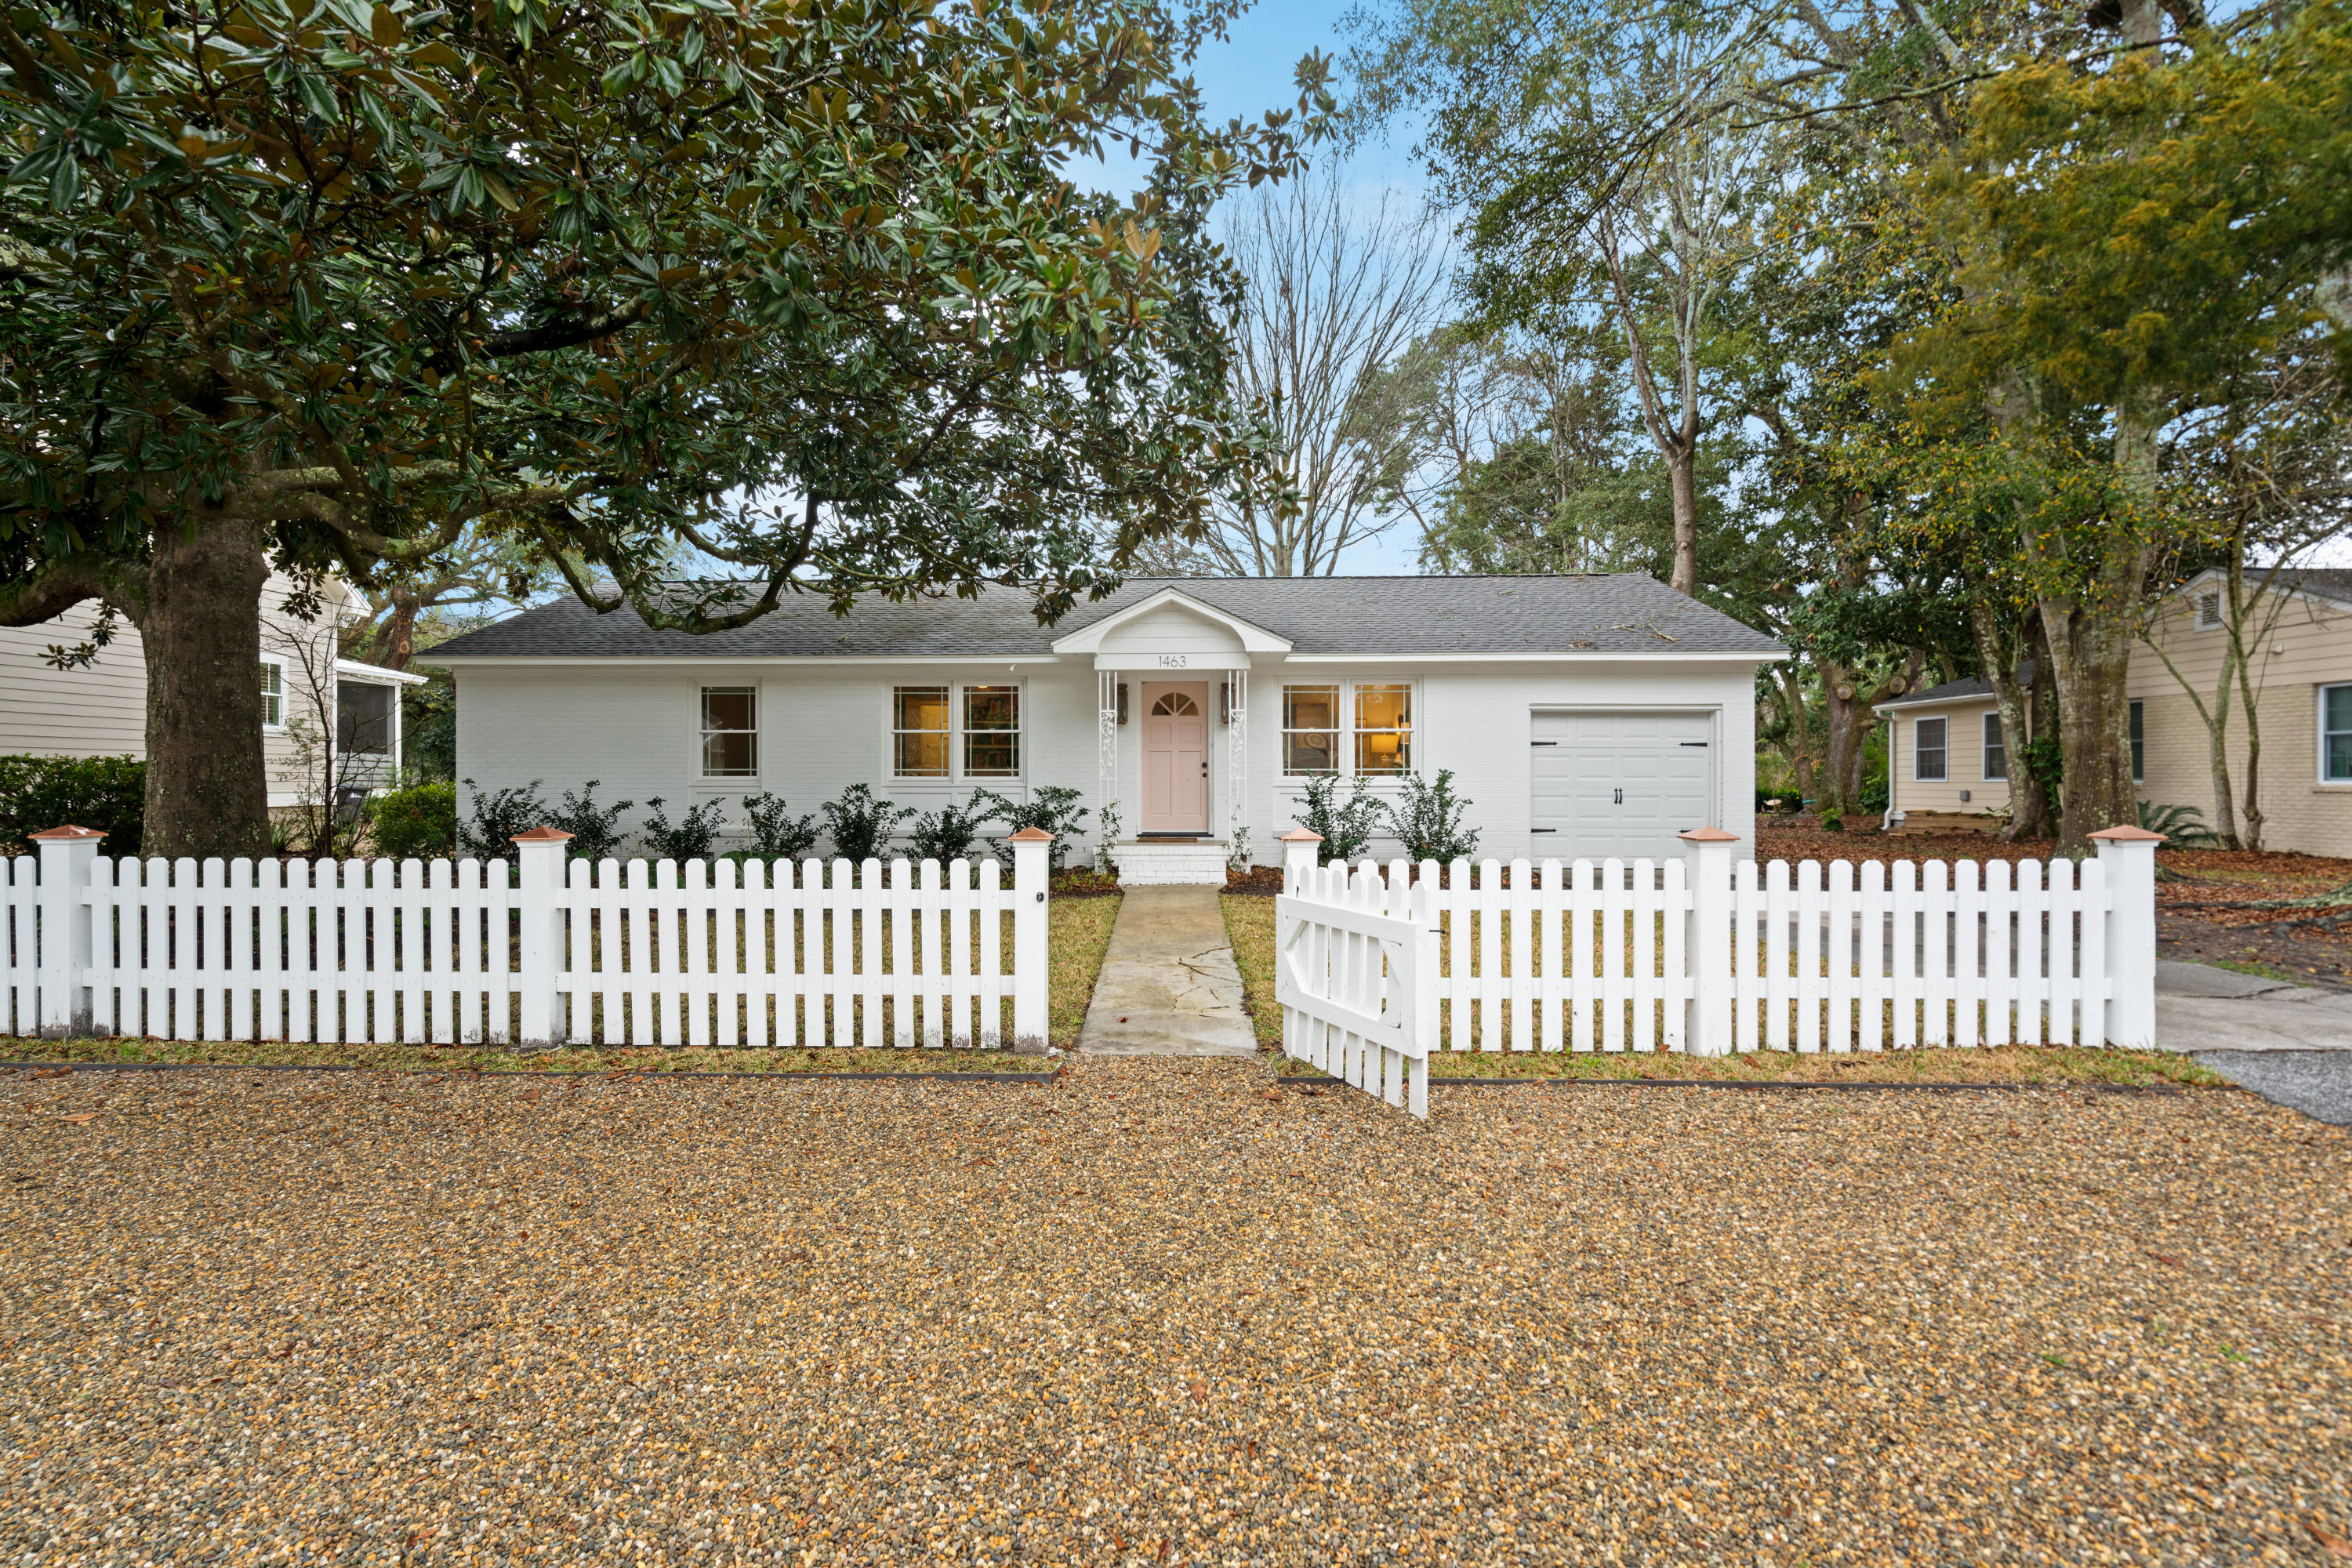 Old Mt Pleasant Homes For Sale - 1463 Mataoka, Mount Pleasant, SC - 24